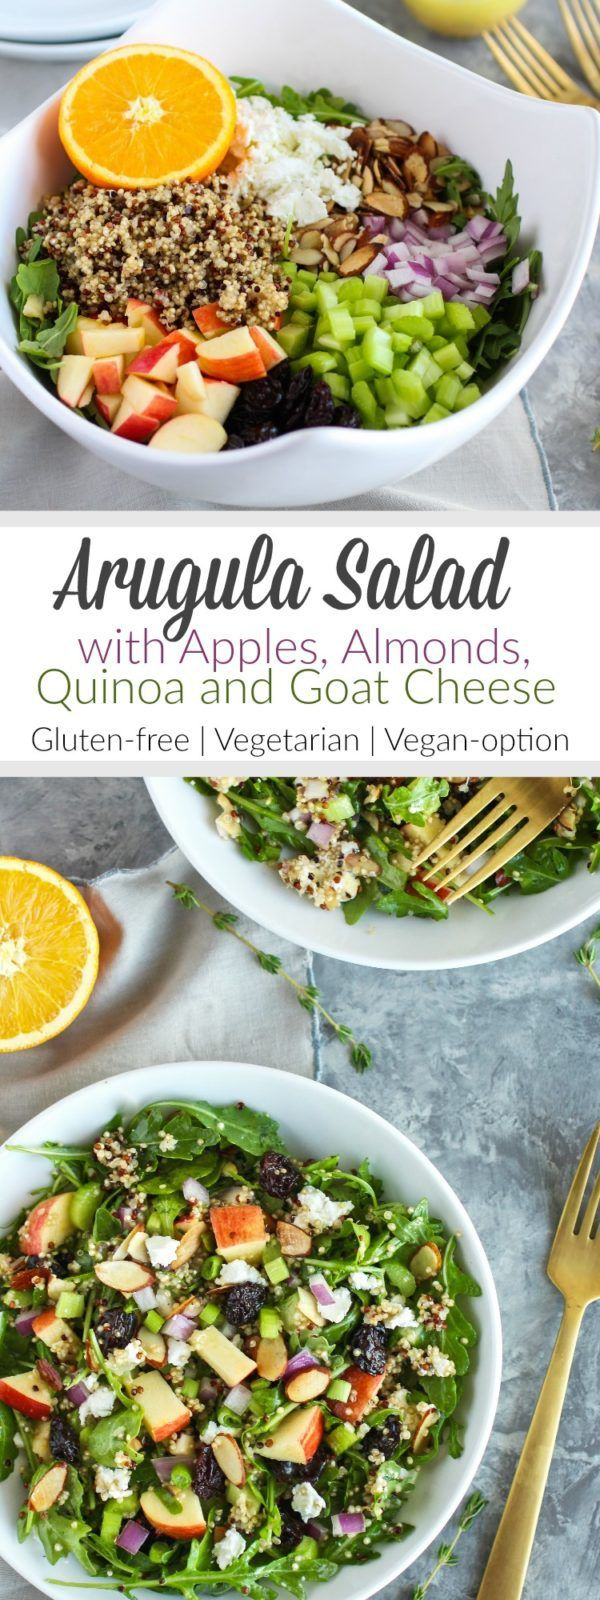 This Arugula Salad combines crisp apples, toasted almonds, hearty quinoa, creamy goat cheese, tart dried cherries and tossed in a delicious citrus vinaigrette | Gluten-free | Vegetarian | Vegan Optional | http://therealfoodrds.com/arugula-salad-with-apple